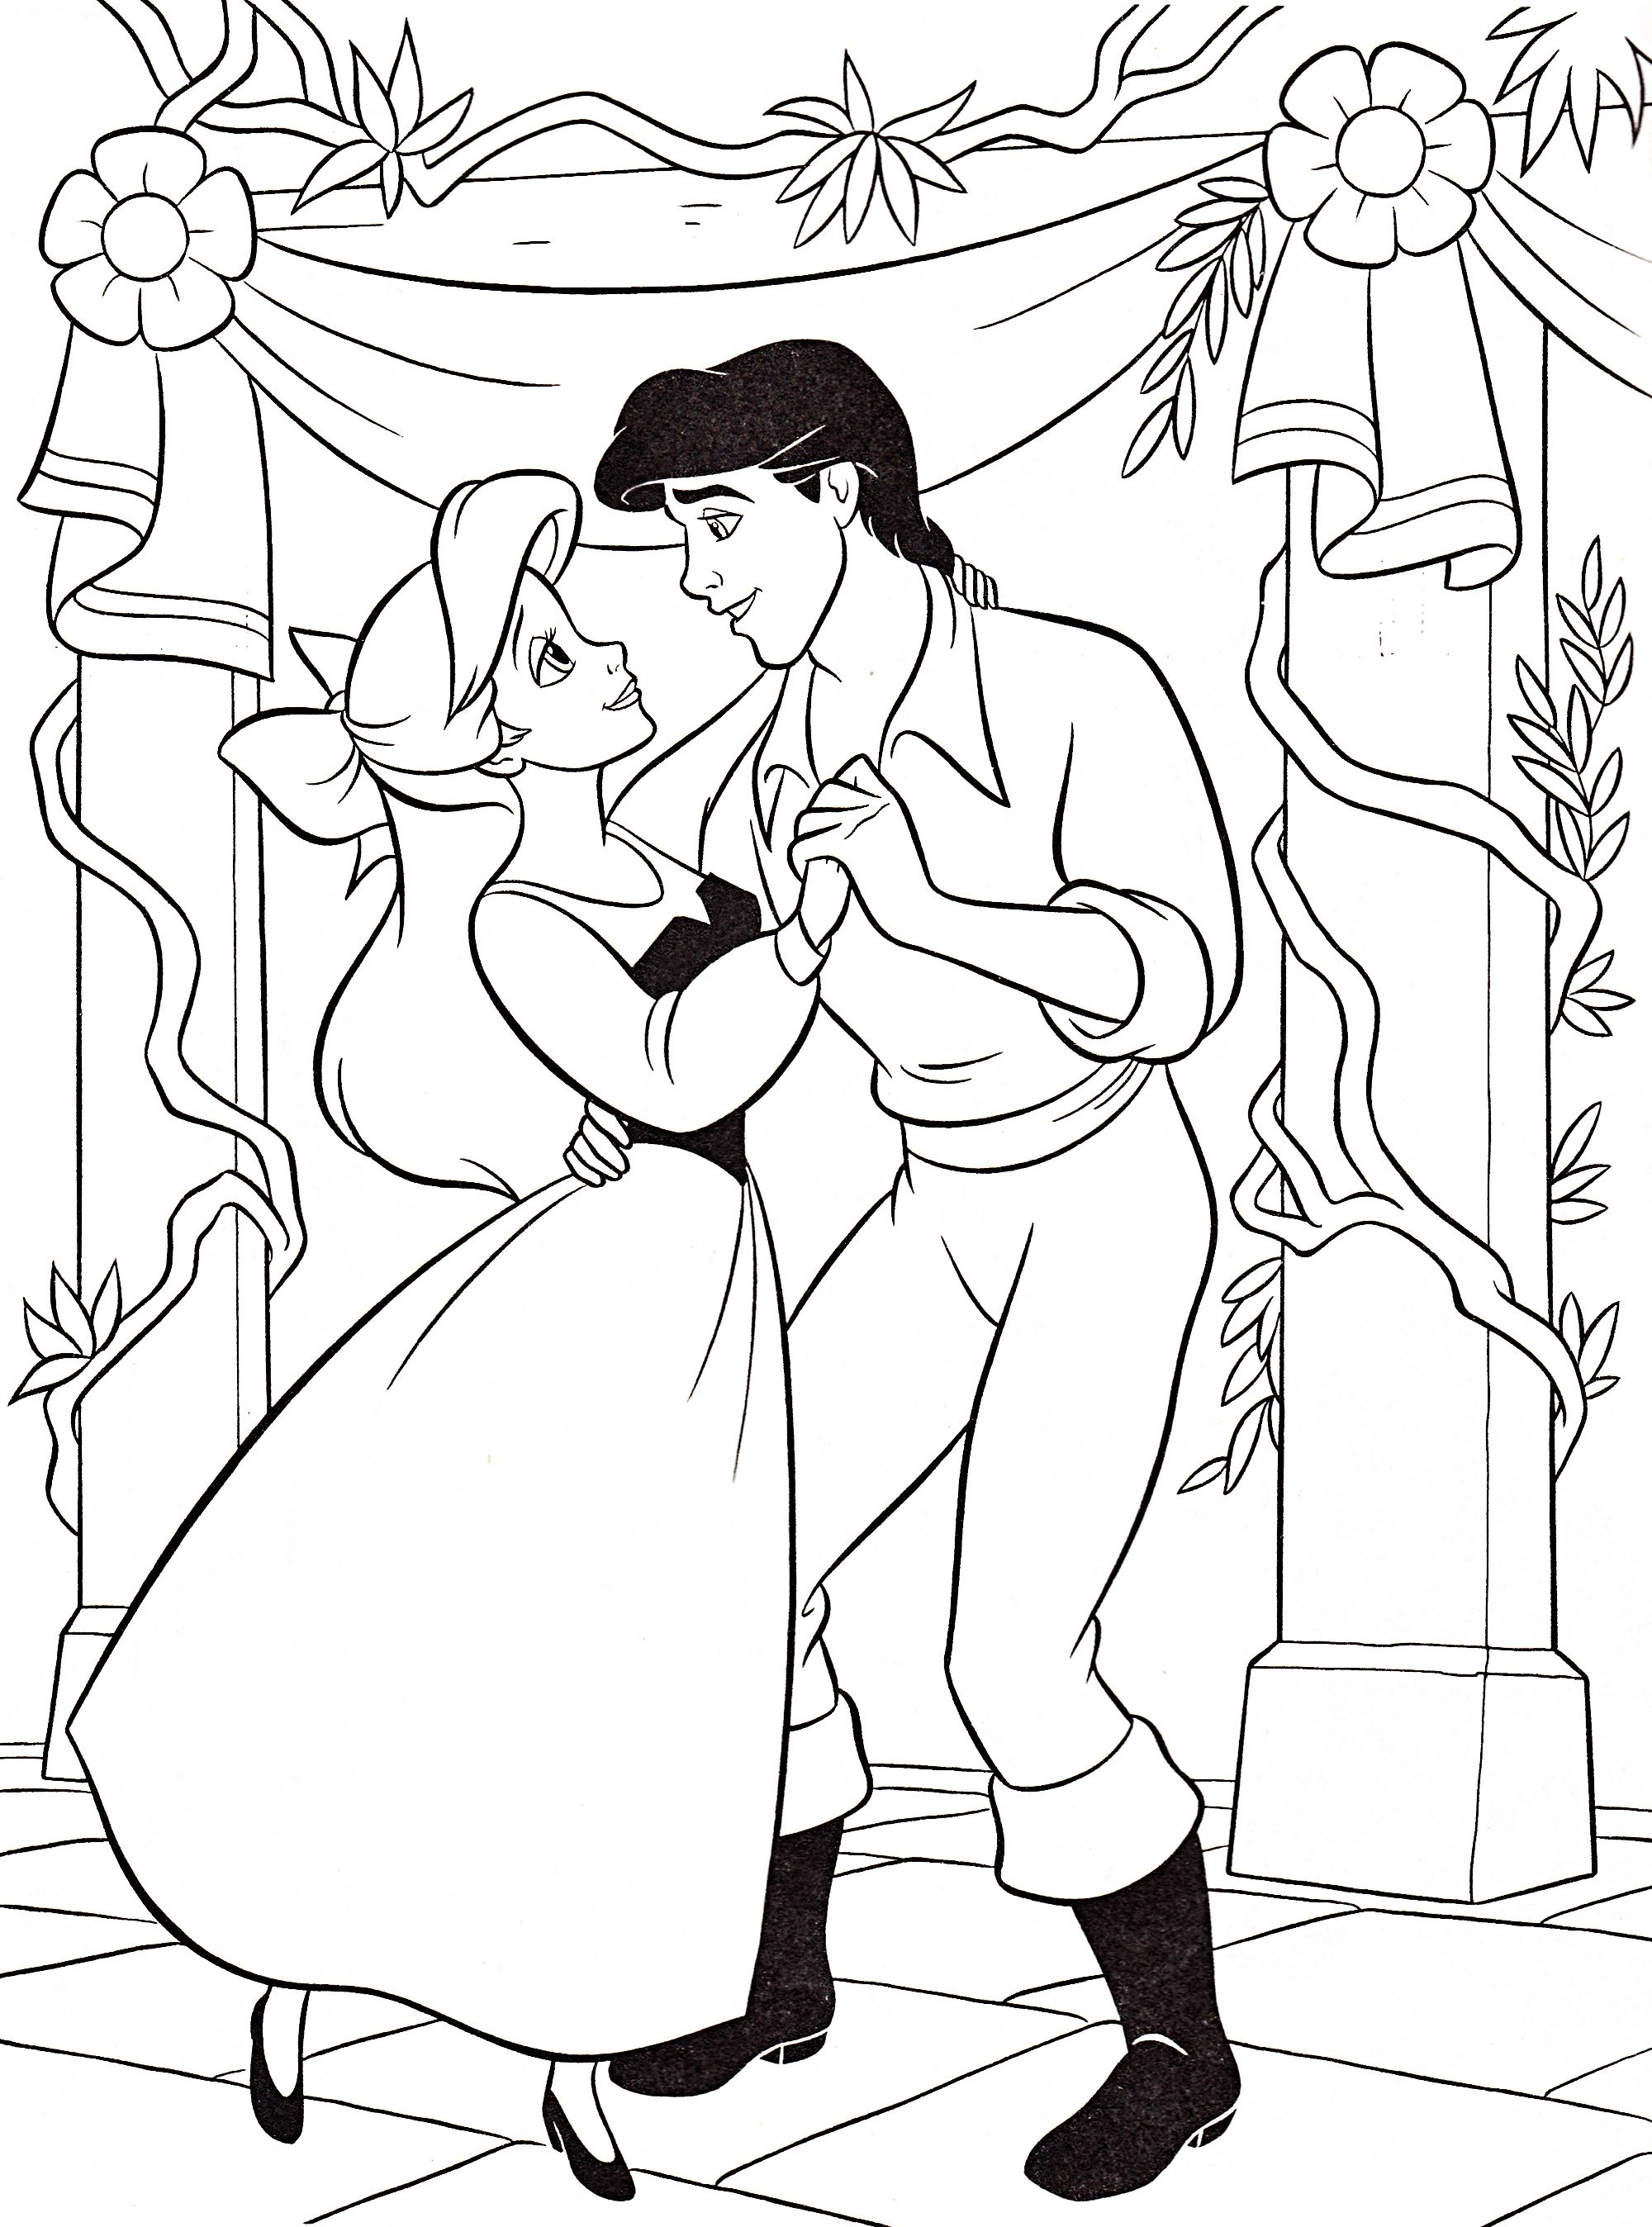 Ariel Dance With Prince Eric Coloring Pages Cartoon